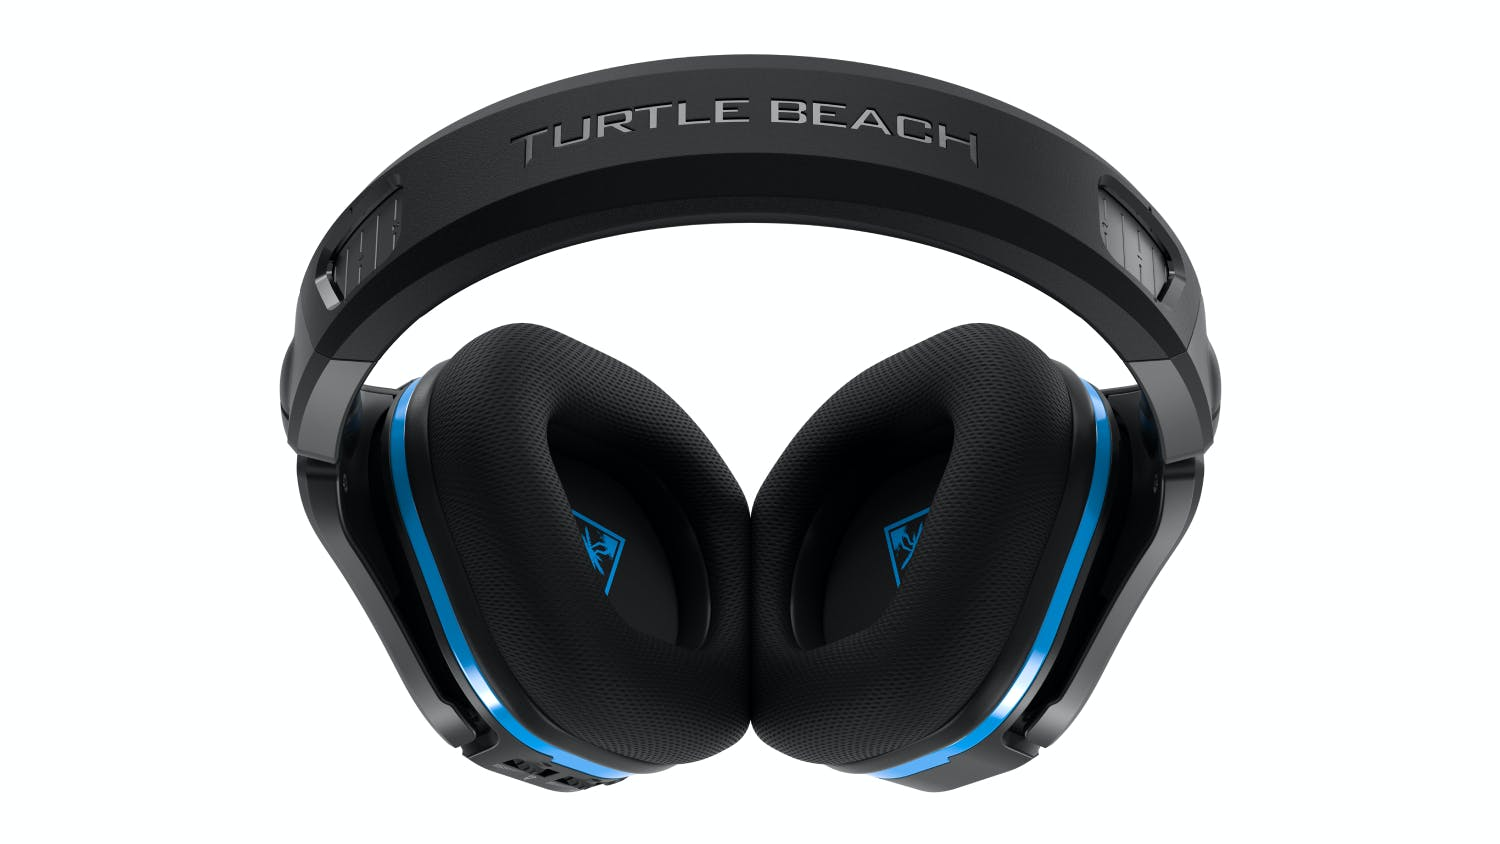 Turtle Beach Stealth 600P (Gen 2) Gaming Headset for PS4 - Black